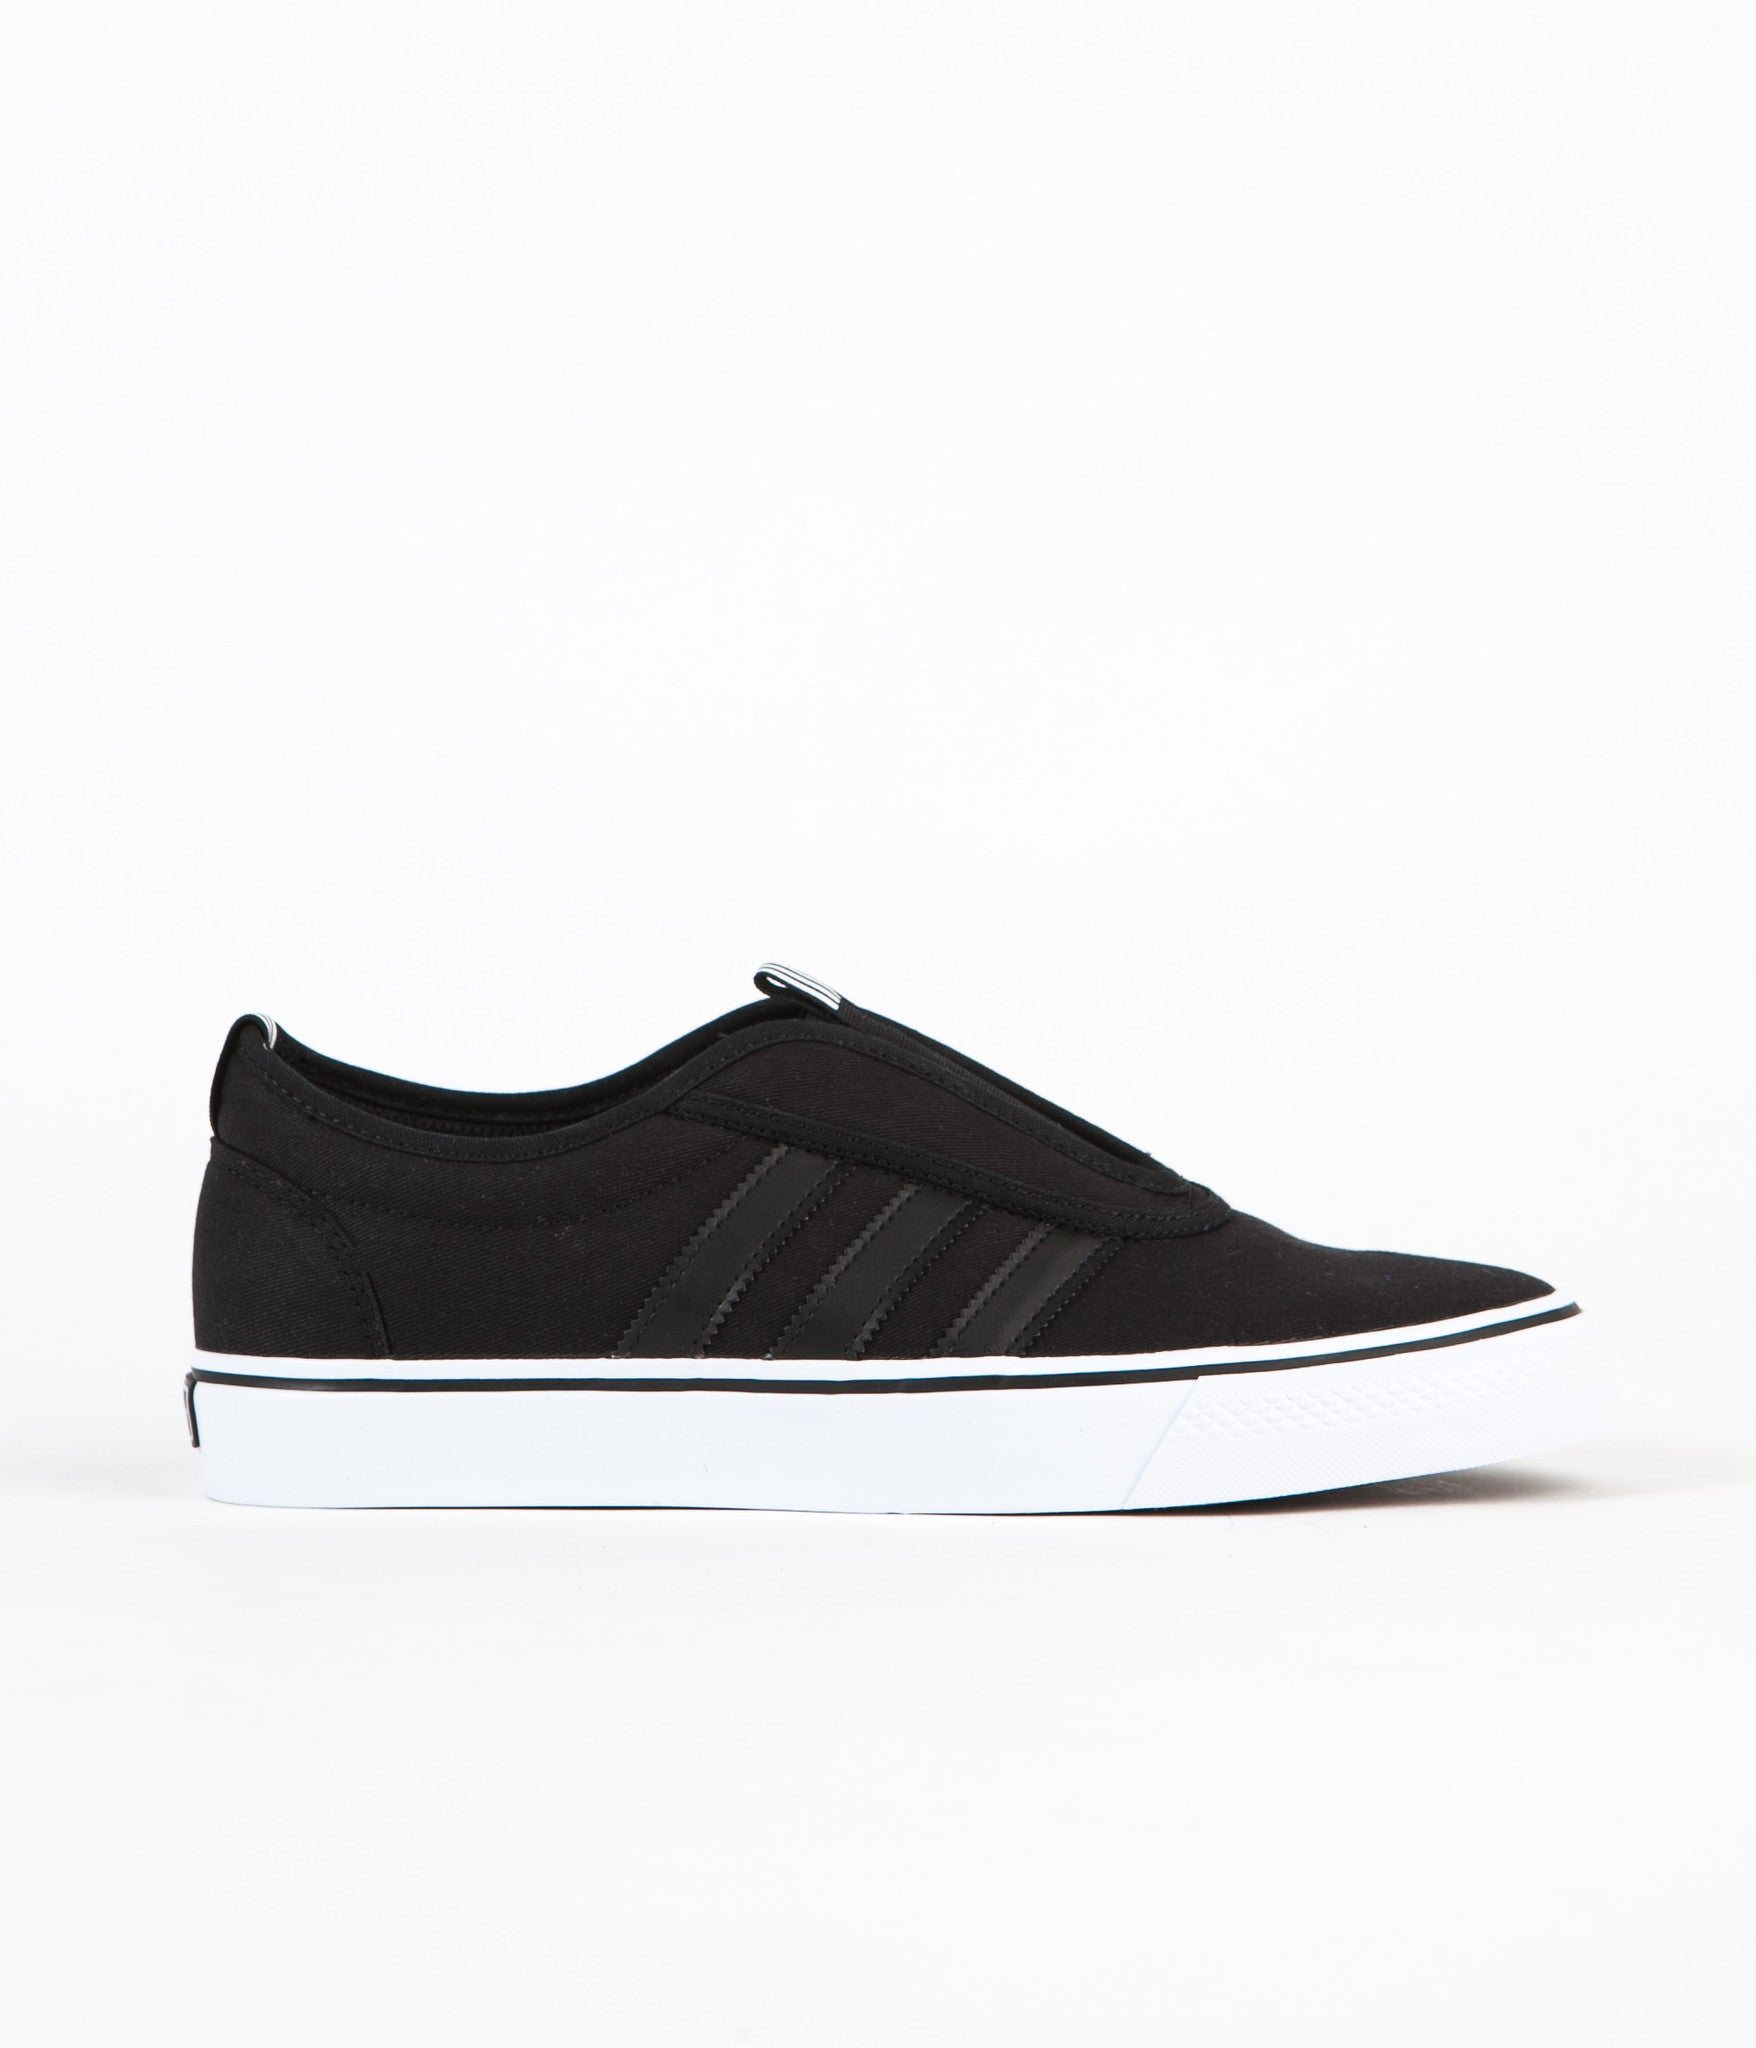 Adidas Adi-Ease Kung-Fu Shoes - Core Black / White / Core Black